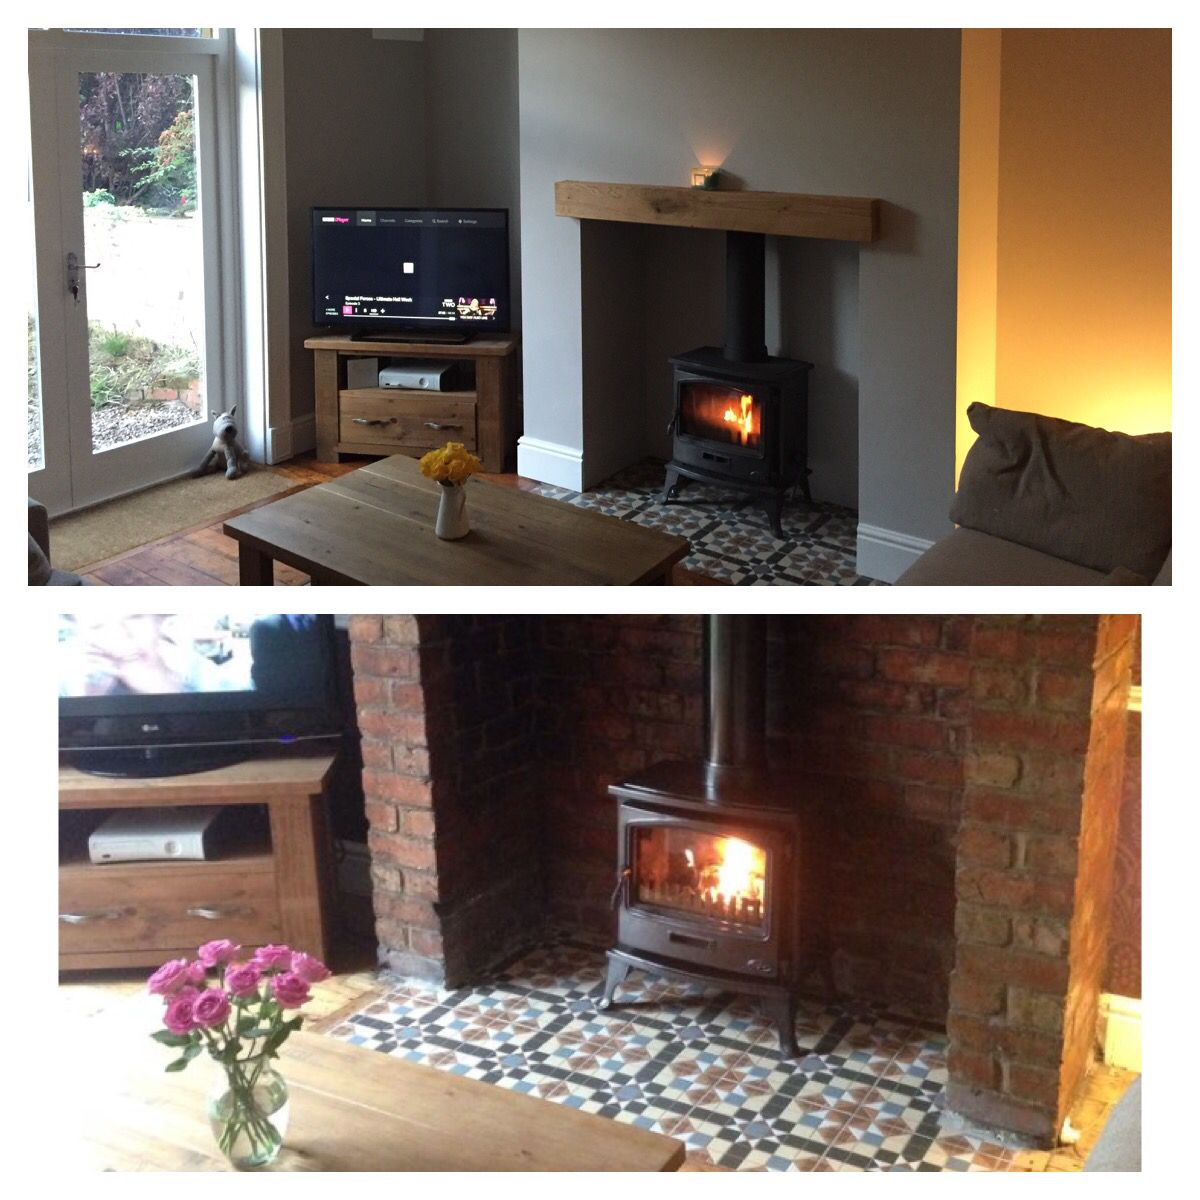 Brick fireplace before and after. Wood burning stove and tiled ...